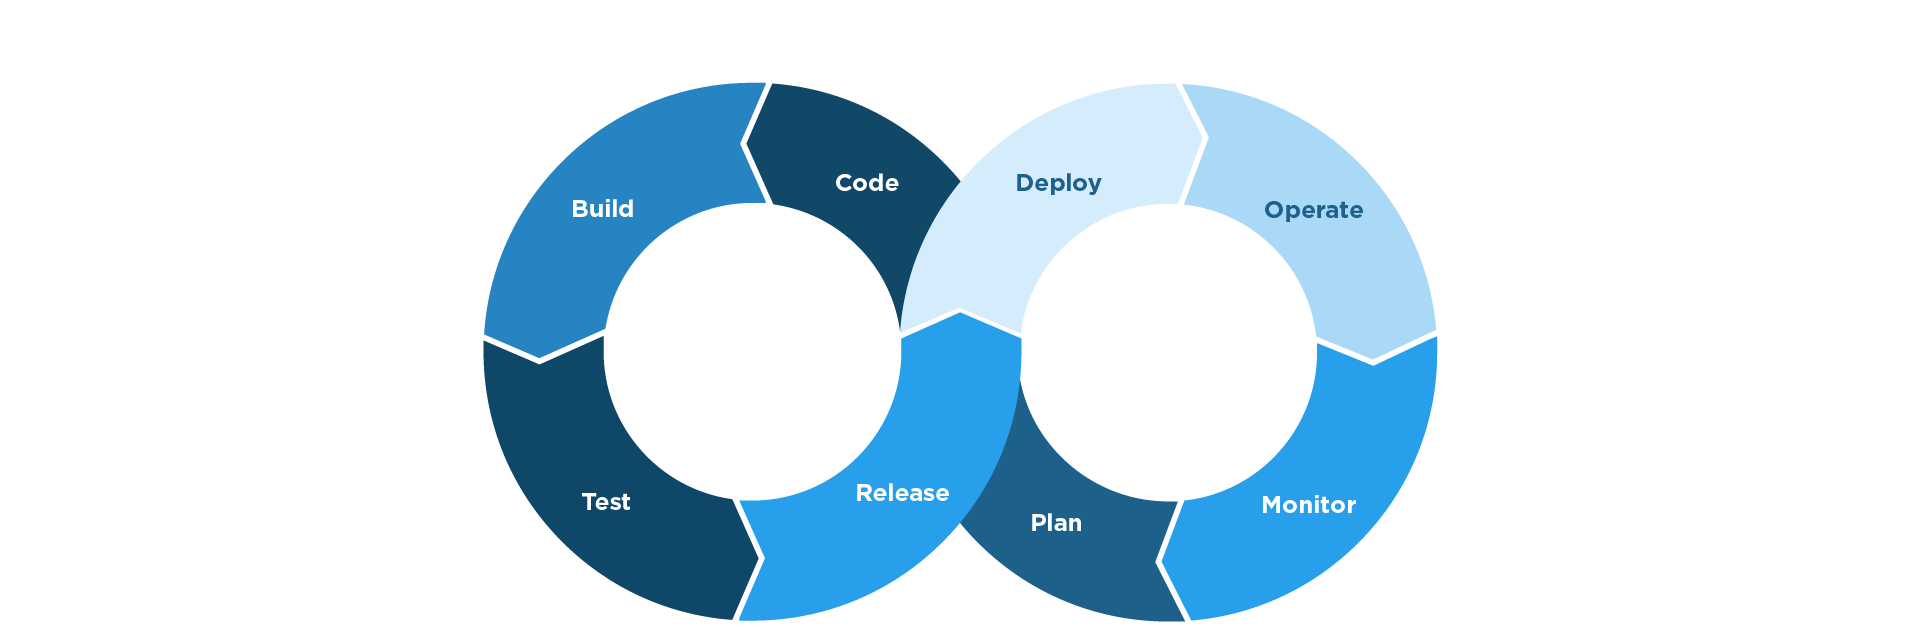 The essential DevOps terms you need to know